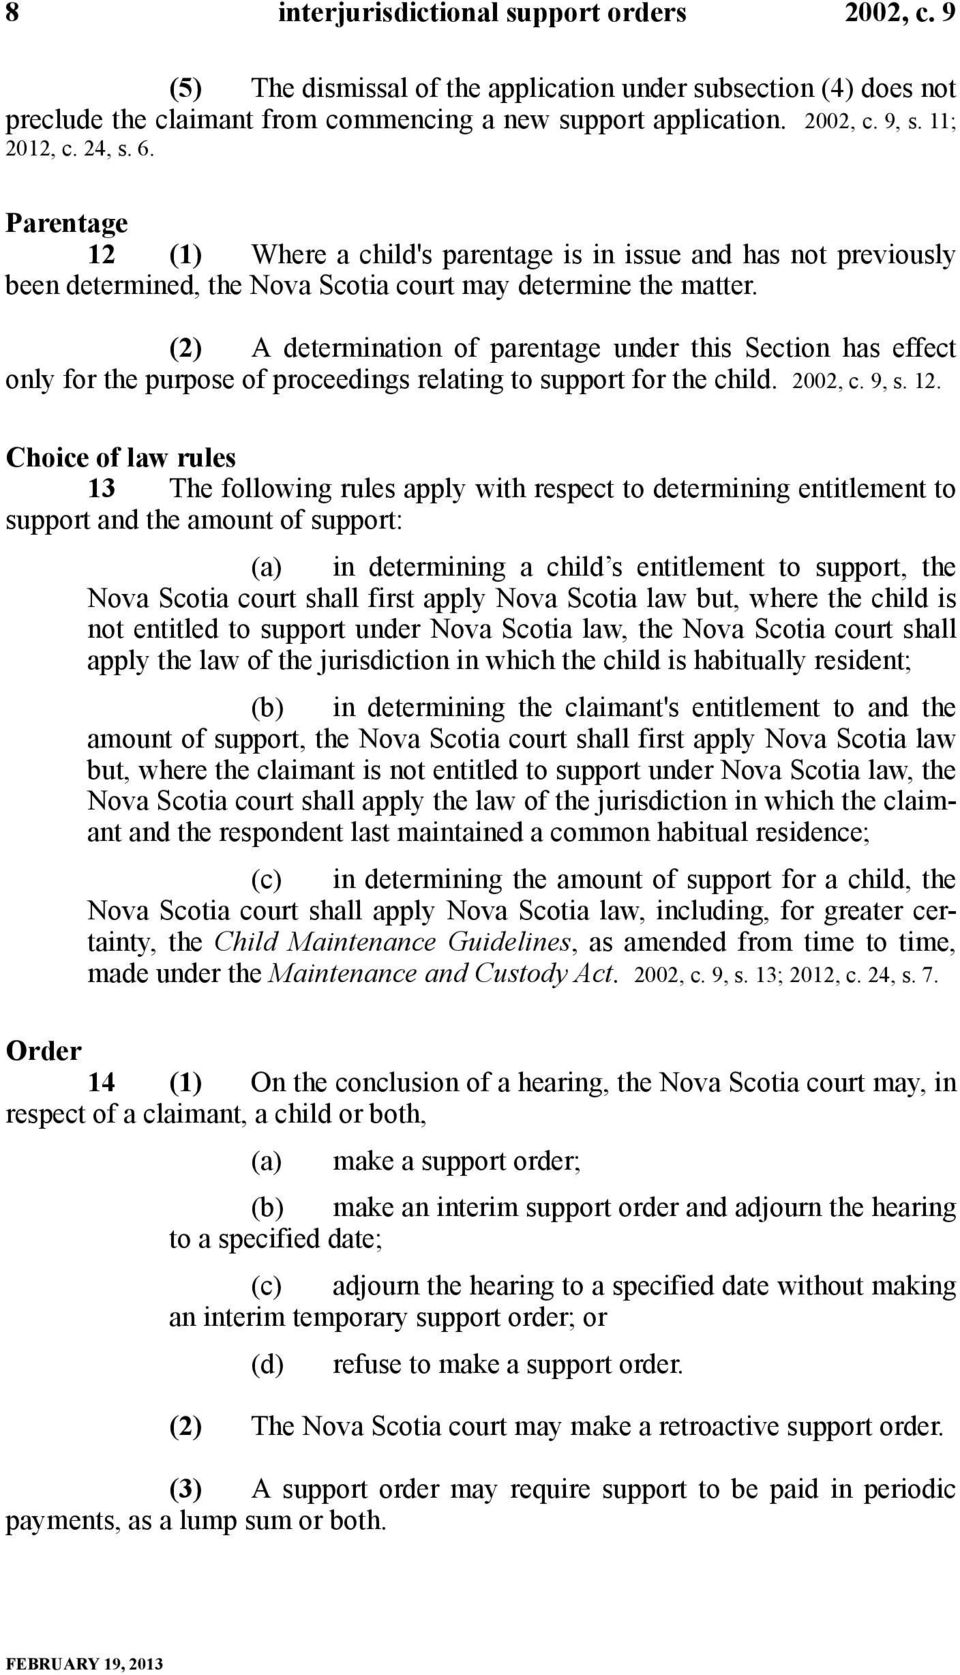 (2) A determination of parentage under this Section has effect only for the purpose of proceedings relating to support for the child. 2002, c. 9, s. 12.